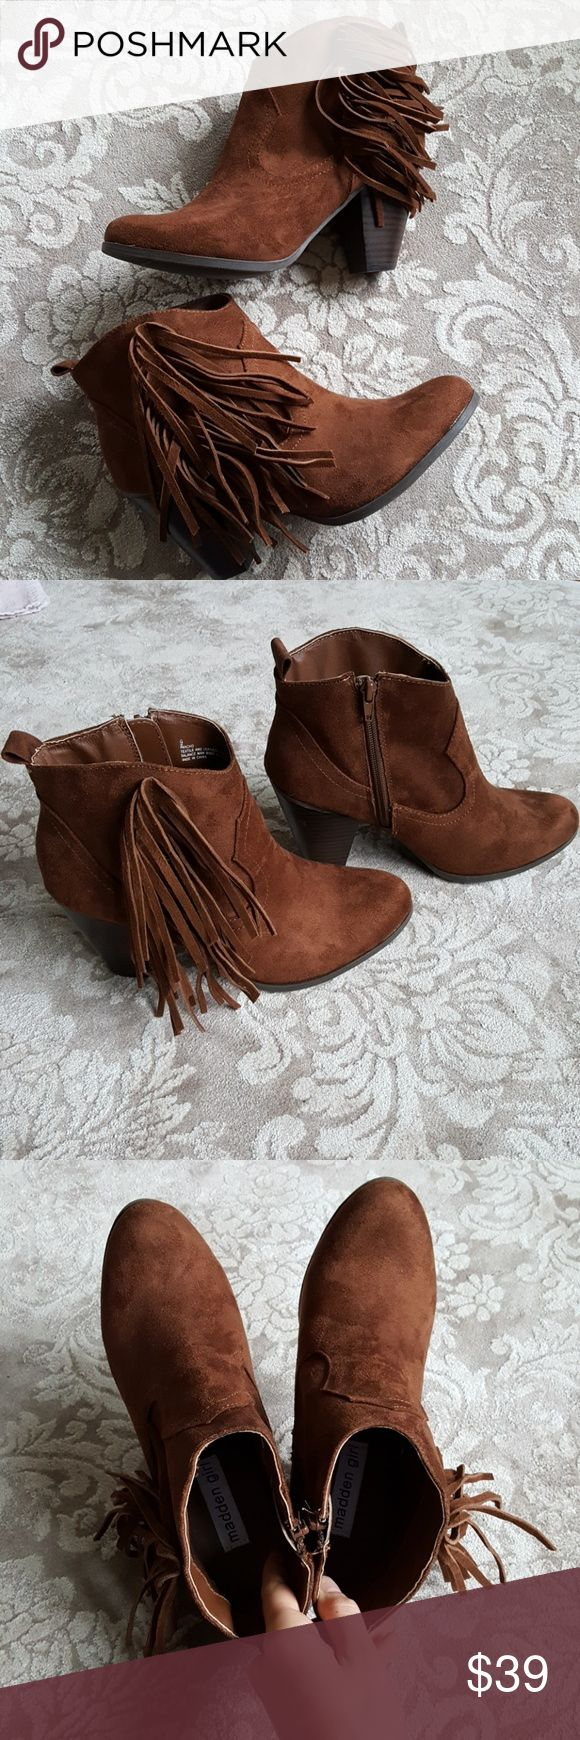 NWOT Fringe ankle boots Soft faux suede ankle boots with cute heels and fringe. Very comfortable and versatile! Never worn Madden Girl Shoes Ankle Boots & Booties